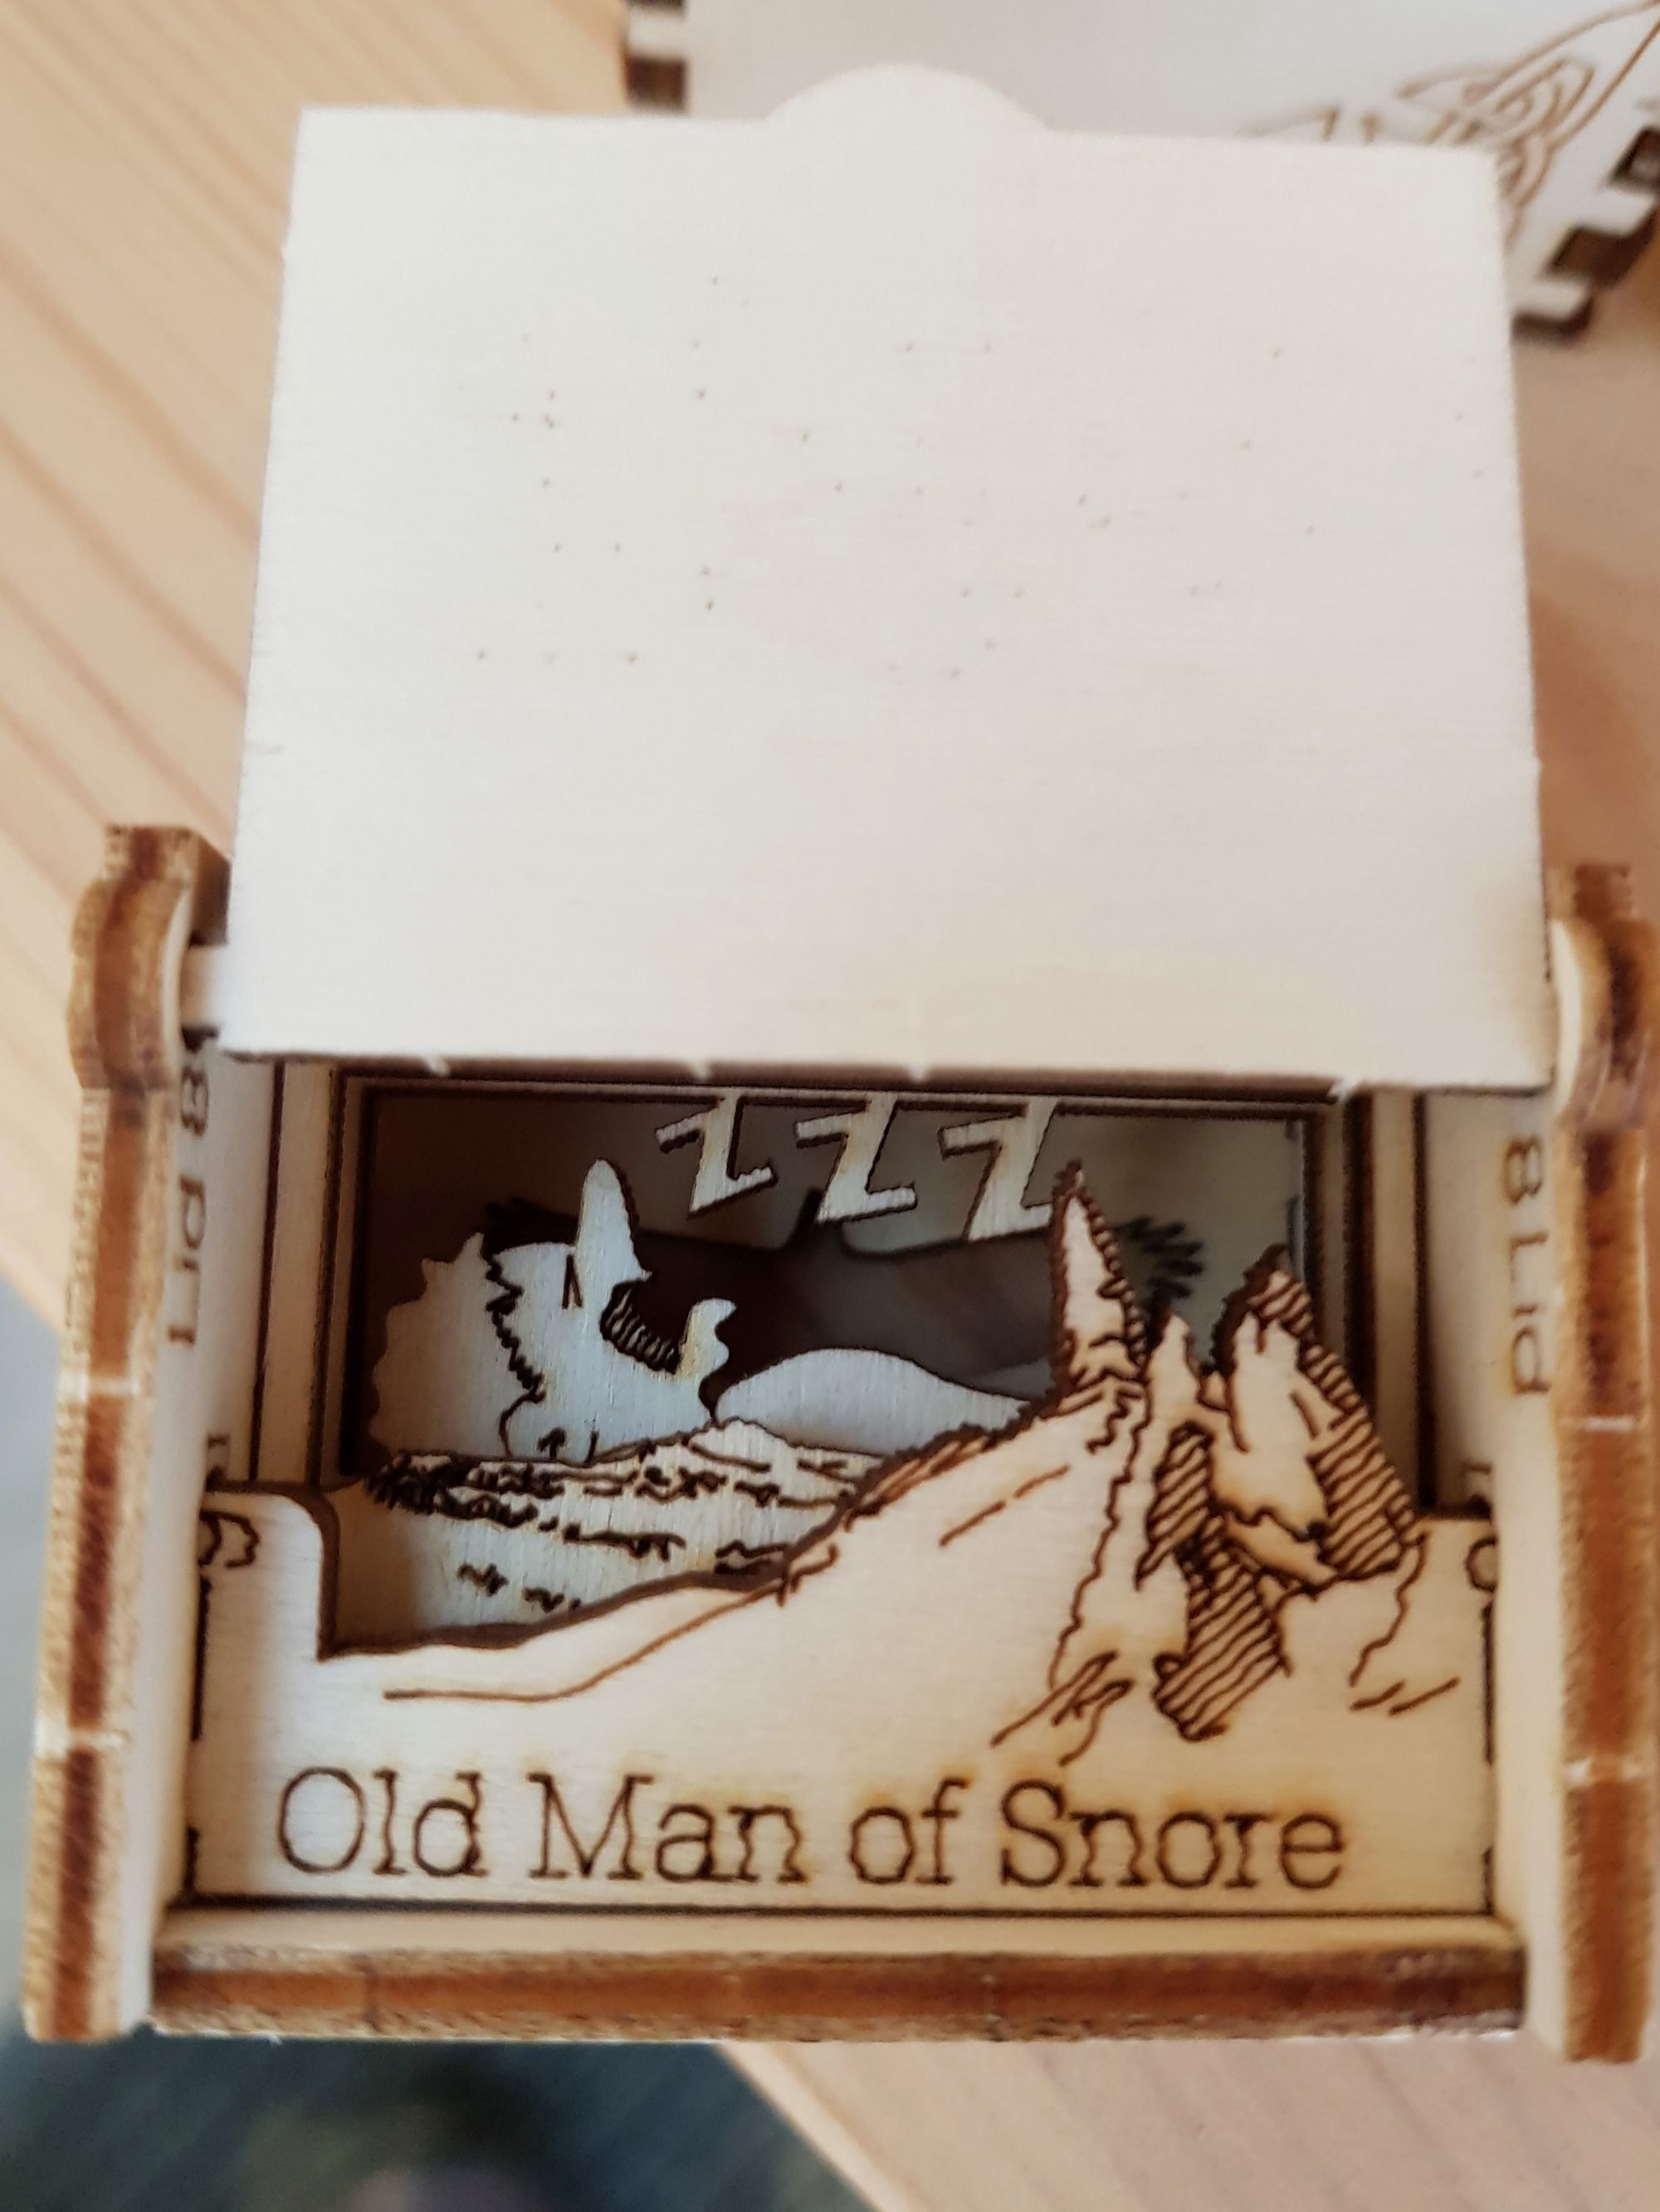 Old man of snore